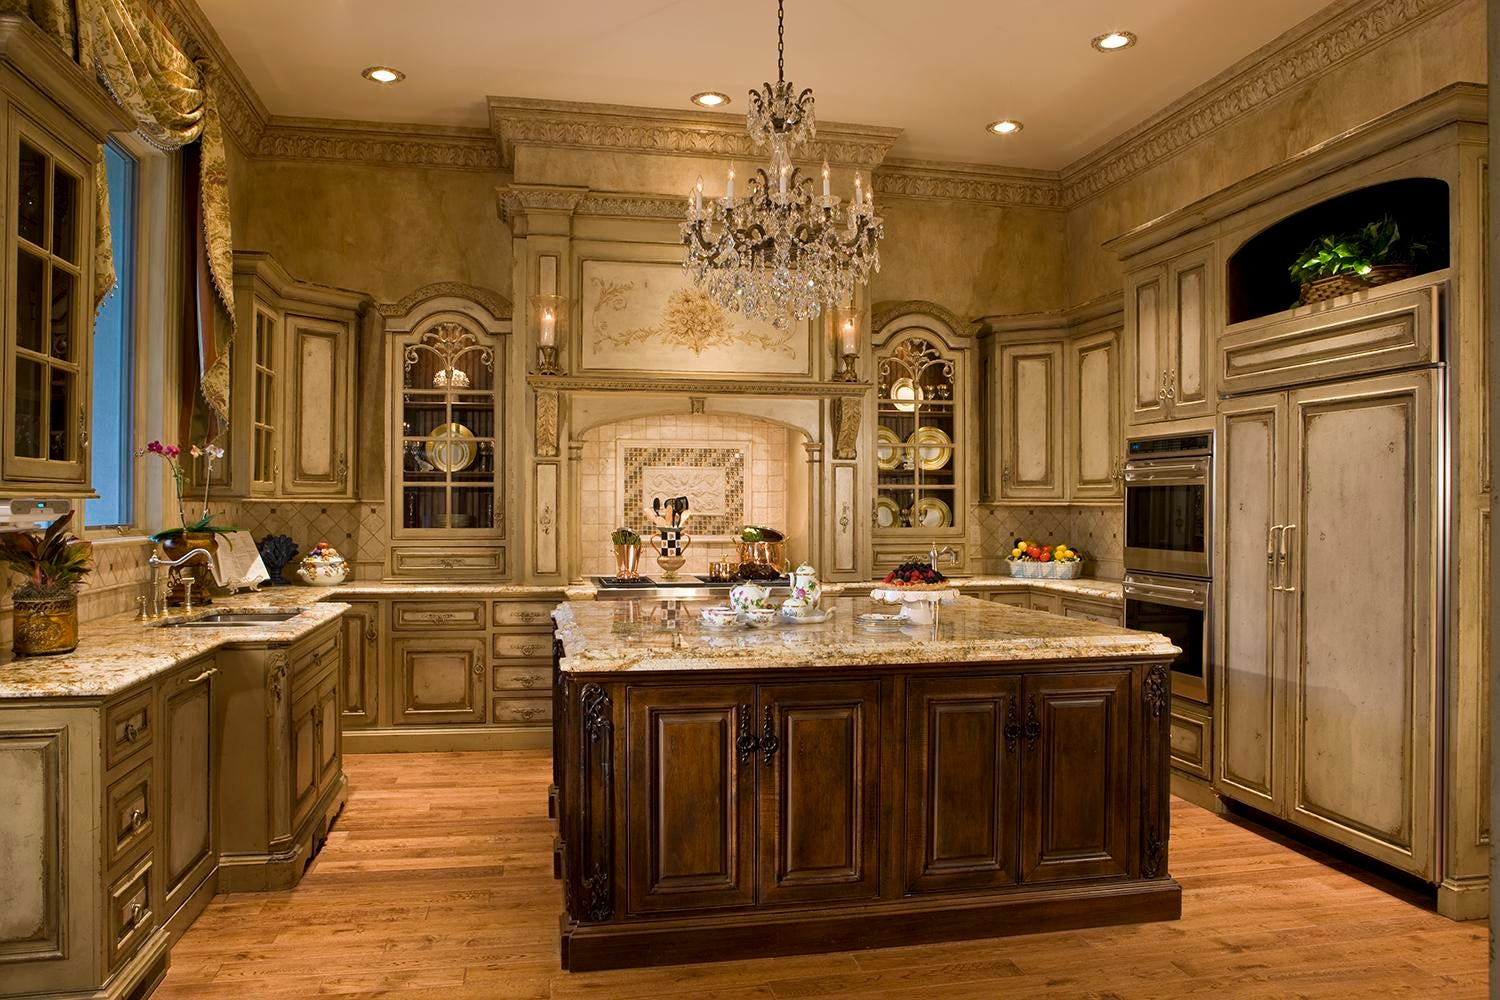 Faux Finished Walls Accent The Tonalities Of The Custom Habersham Cabinetry.